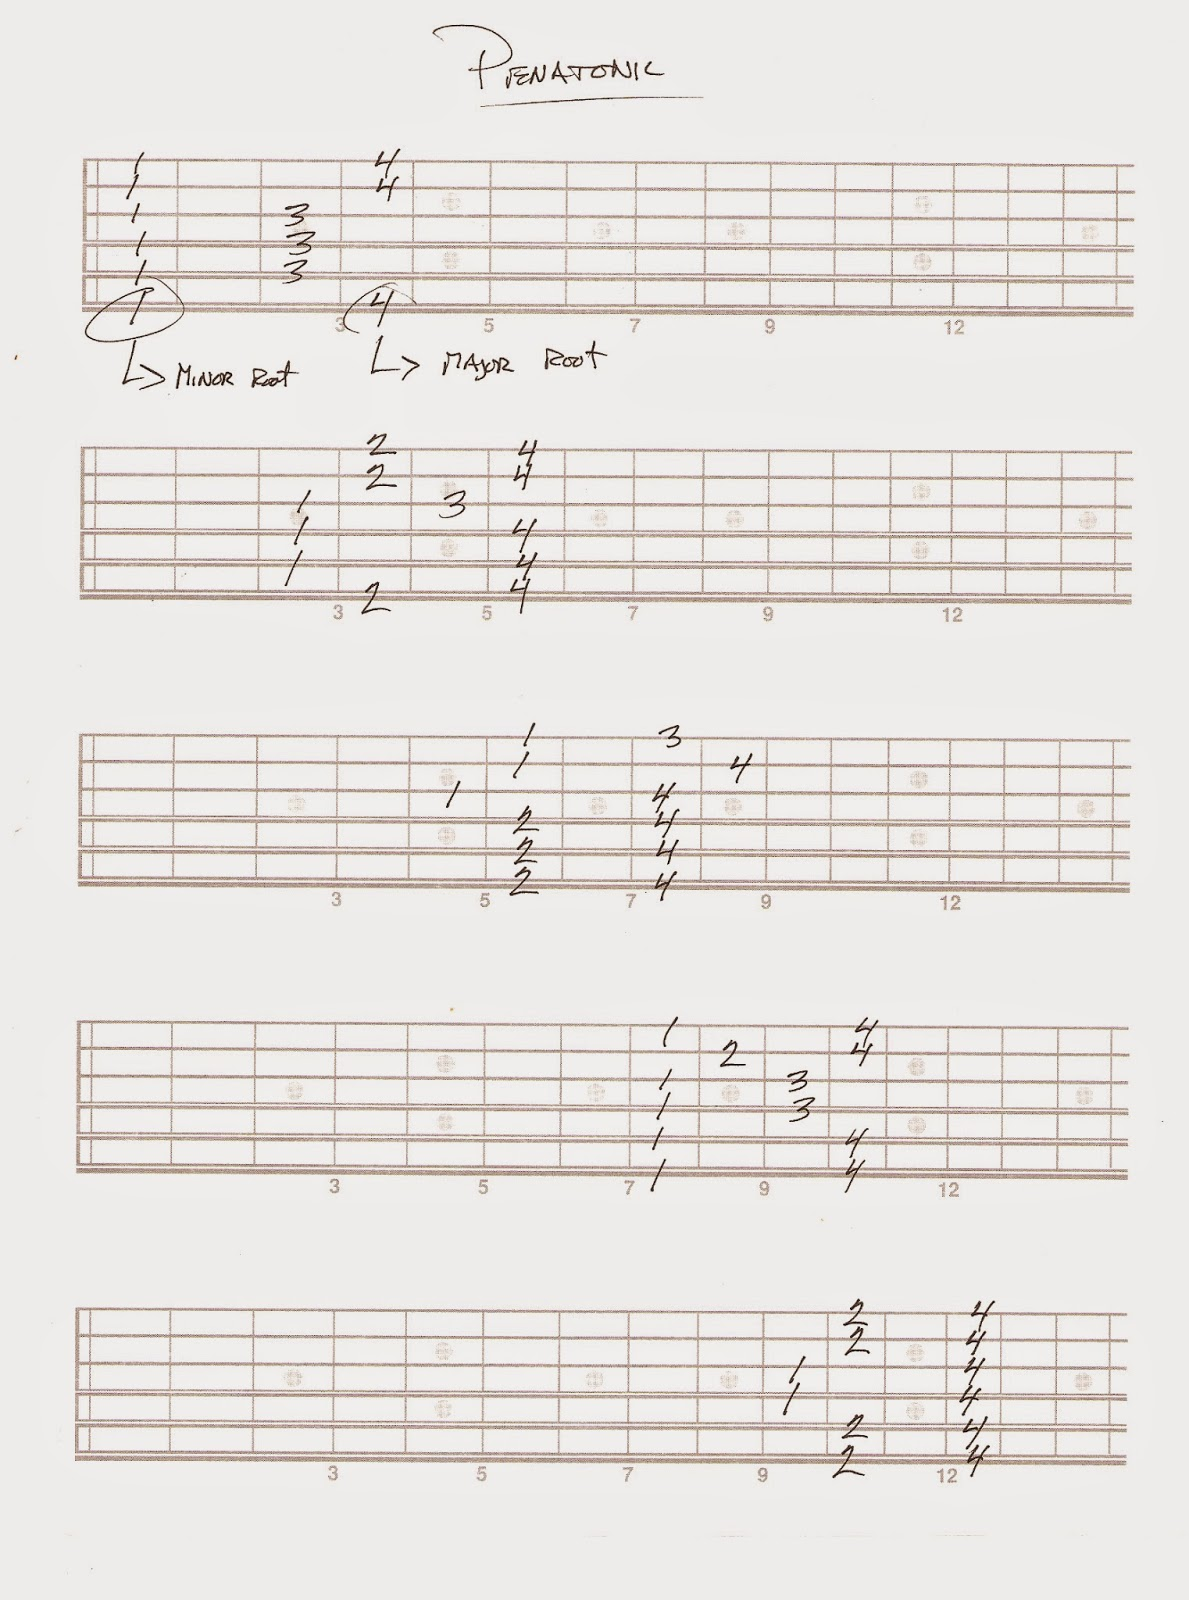 PLHS GUITAR: Simple chords and 15 basic chords for more advanced players.